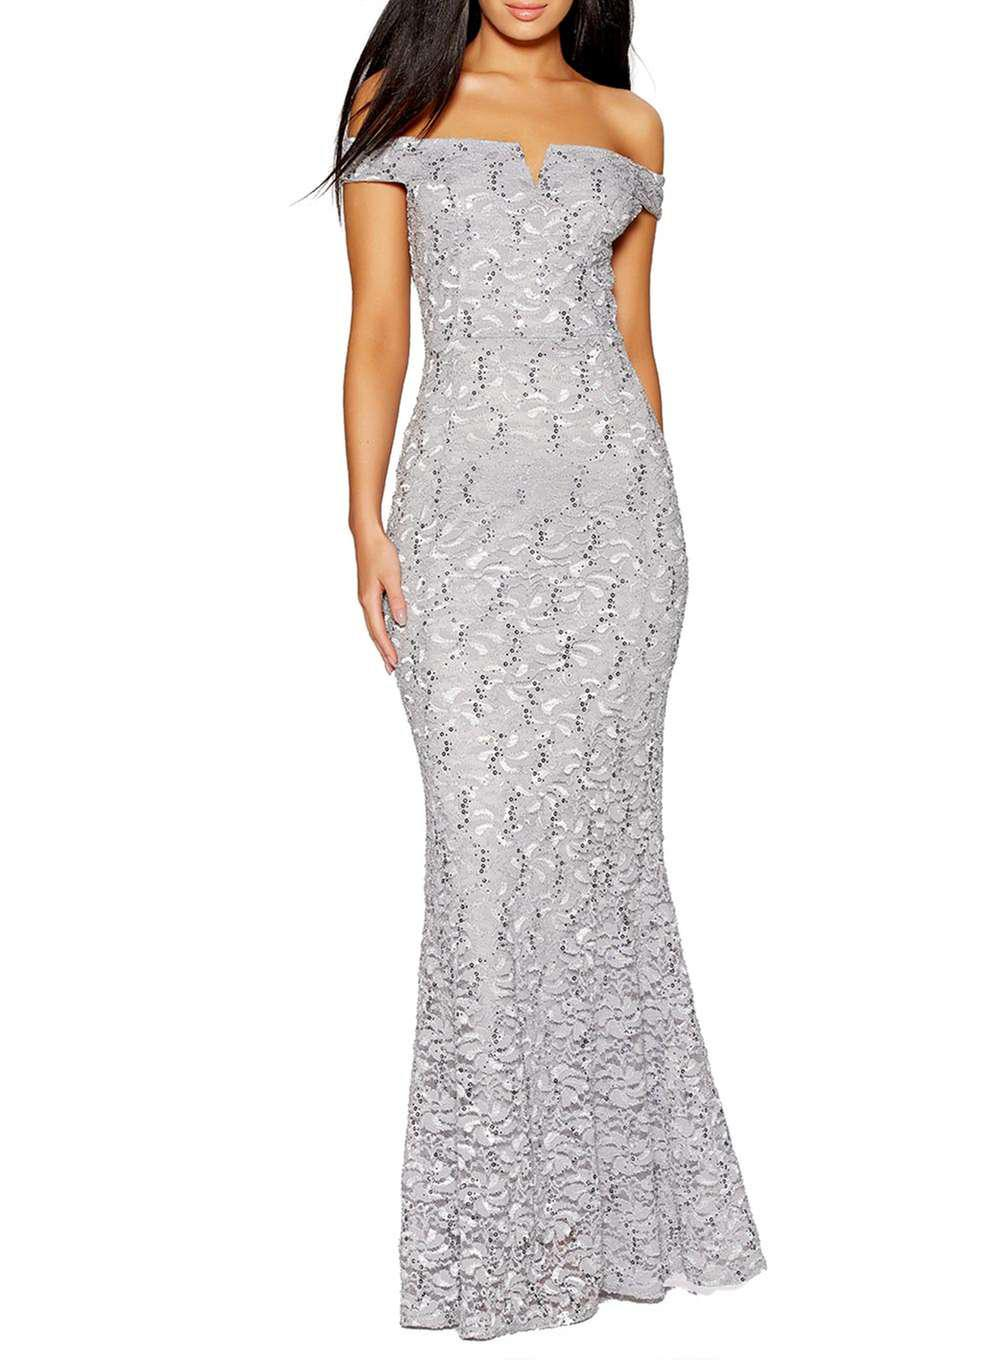 afb68960afc Lyst - Dorothy Perkins Quiz Silver Sequin Fishtail Maxi Dress in ...